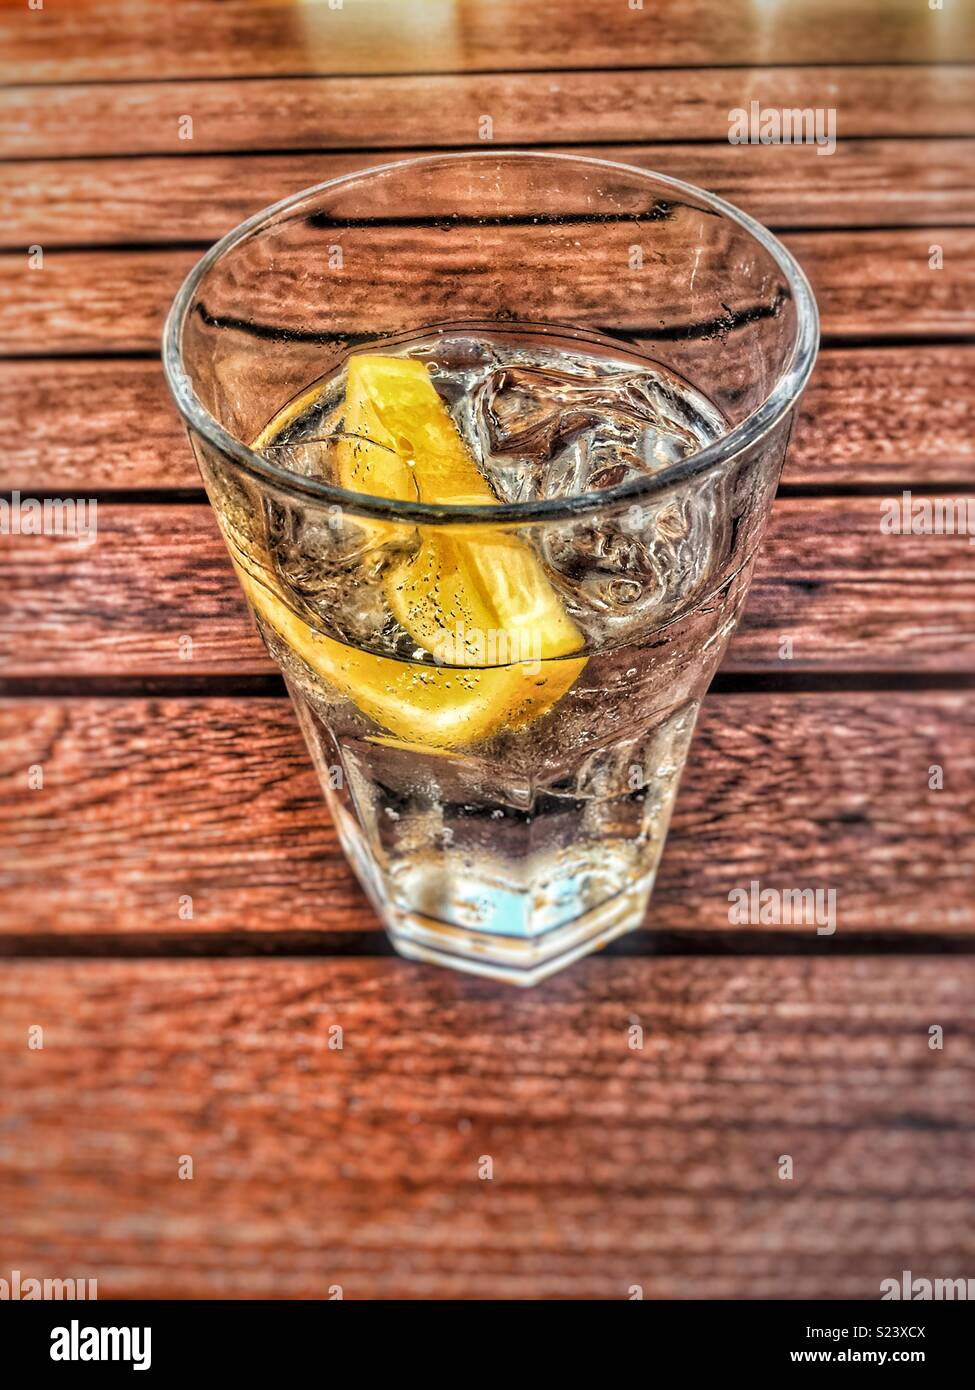 Glass of lemonade on a hot day - Stock Image